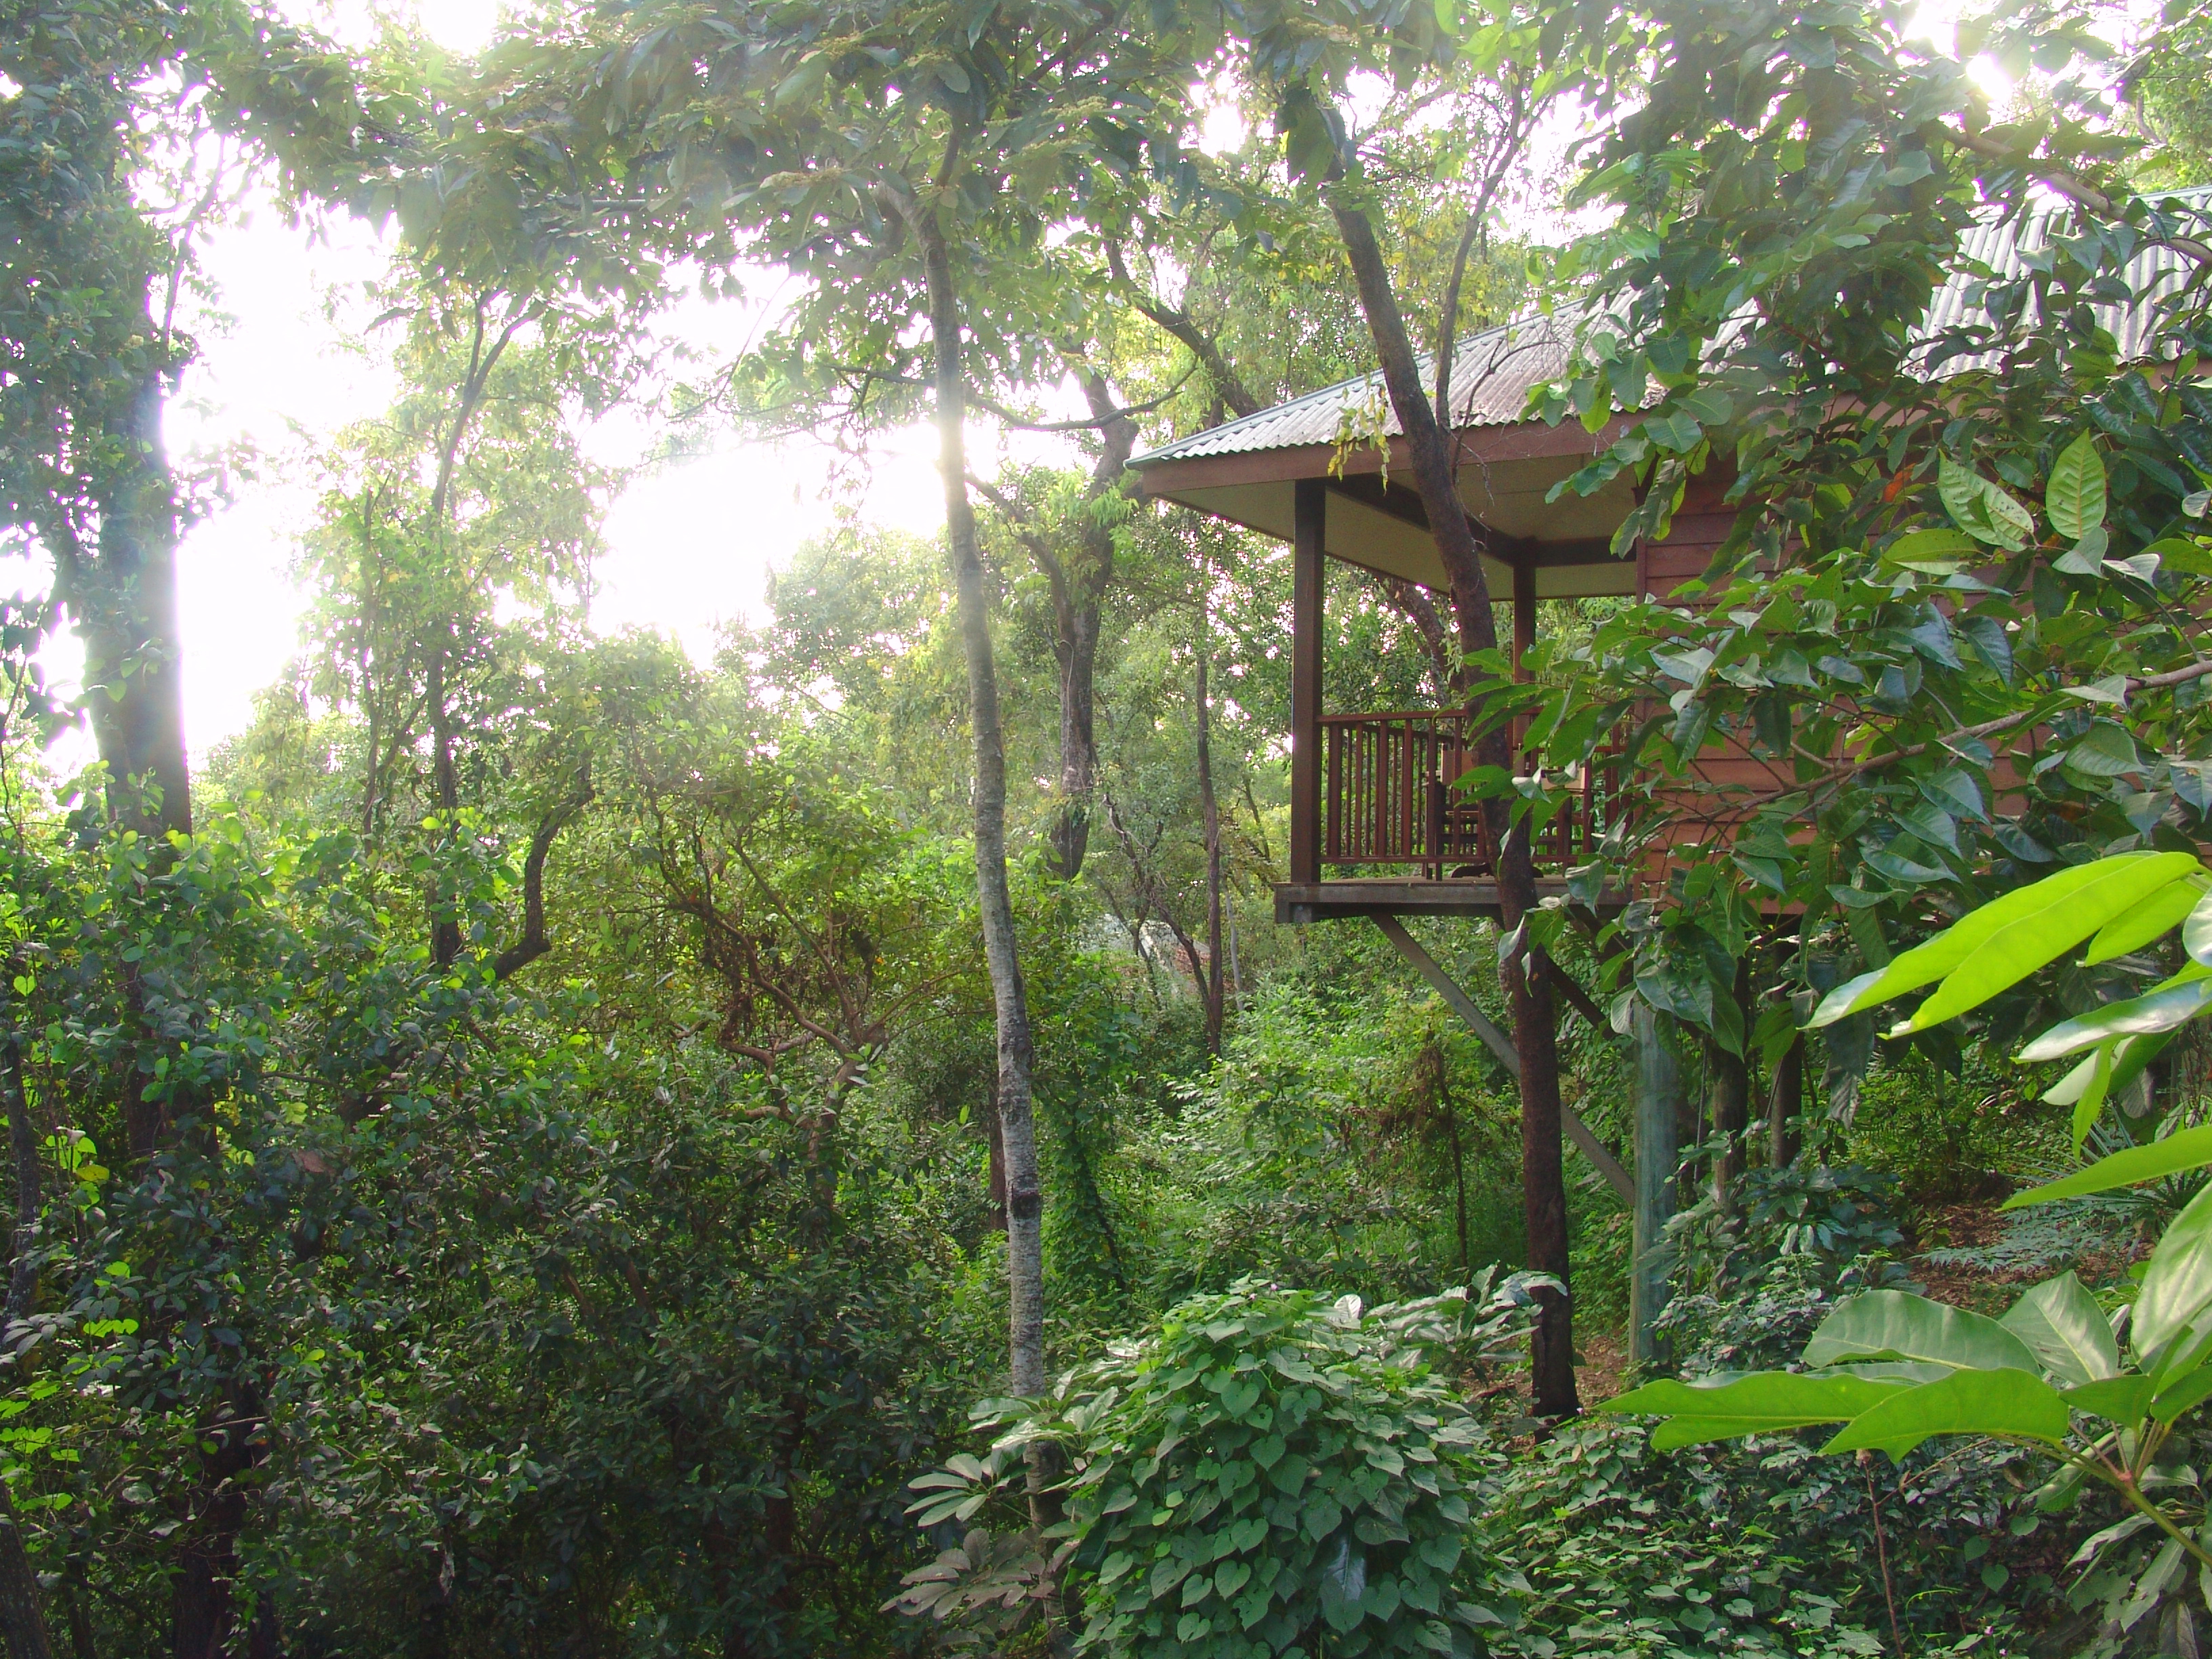 https://www.thalabeach.com.au/wp-content/uploads/2010/07/Thala-eucalypt-bungalow-forest-canopy.jpg